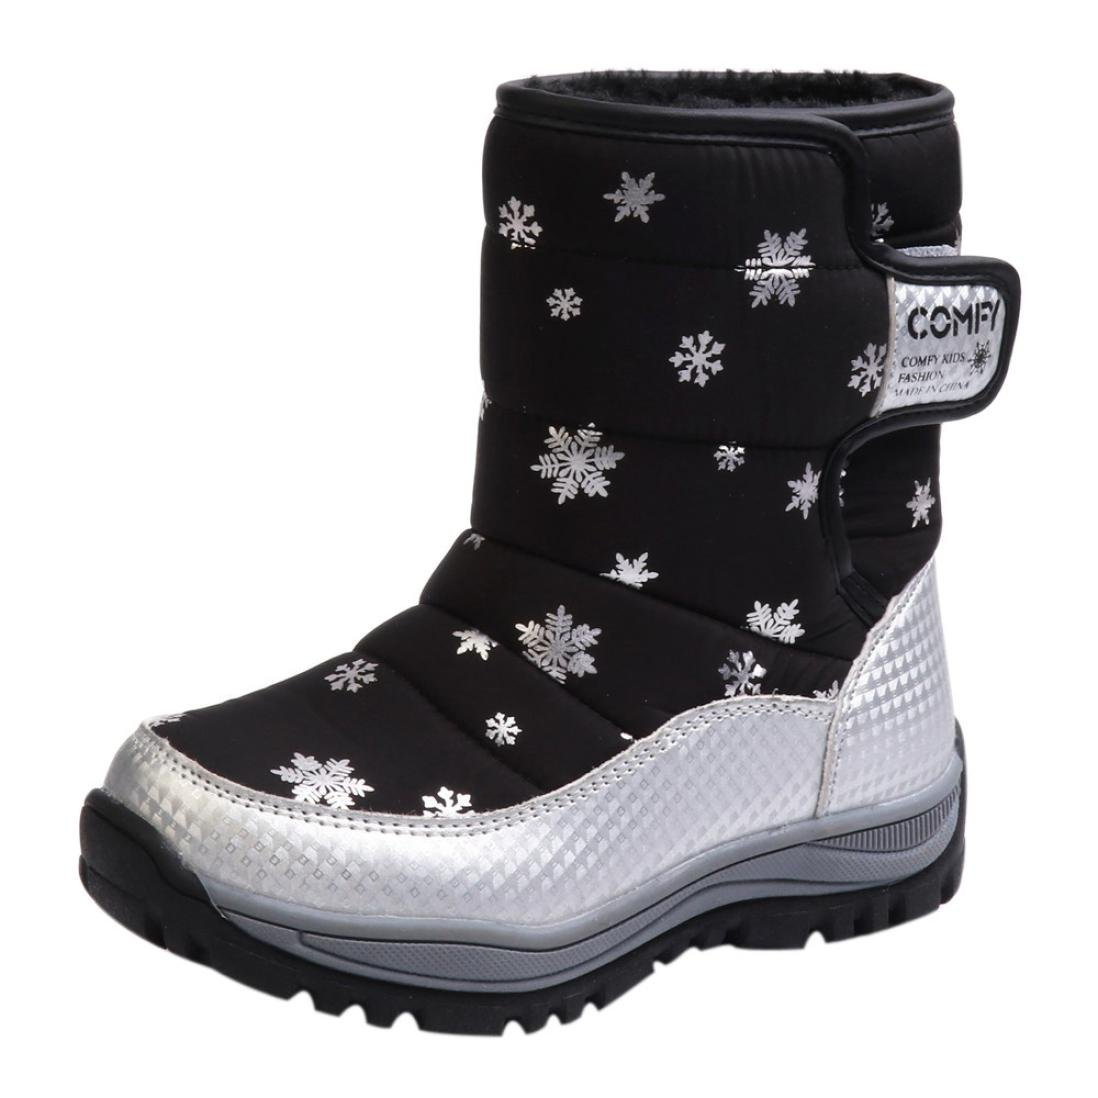 82fb761bcf64 Children snow boots shoes winter high ankle boots fashion kids shoes  students sneakers boot keep warm